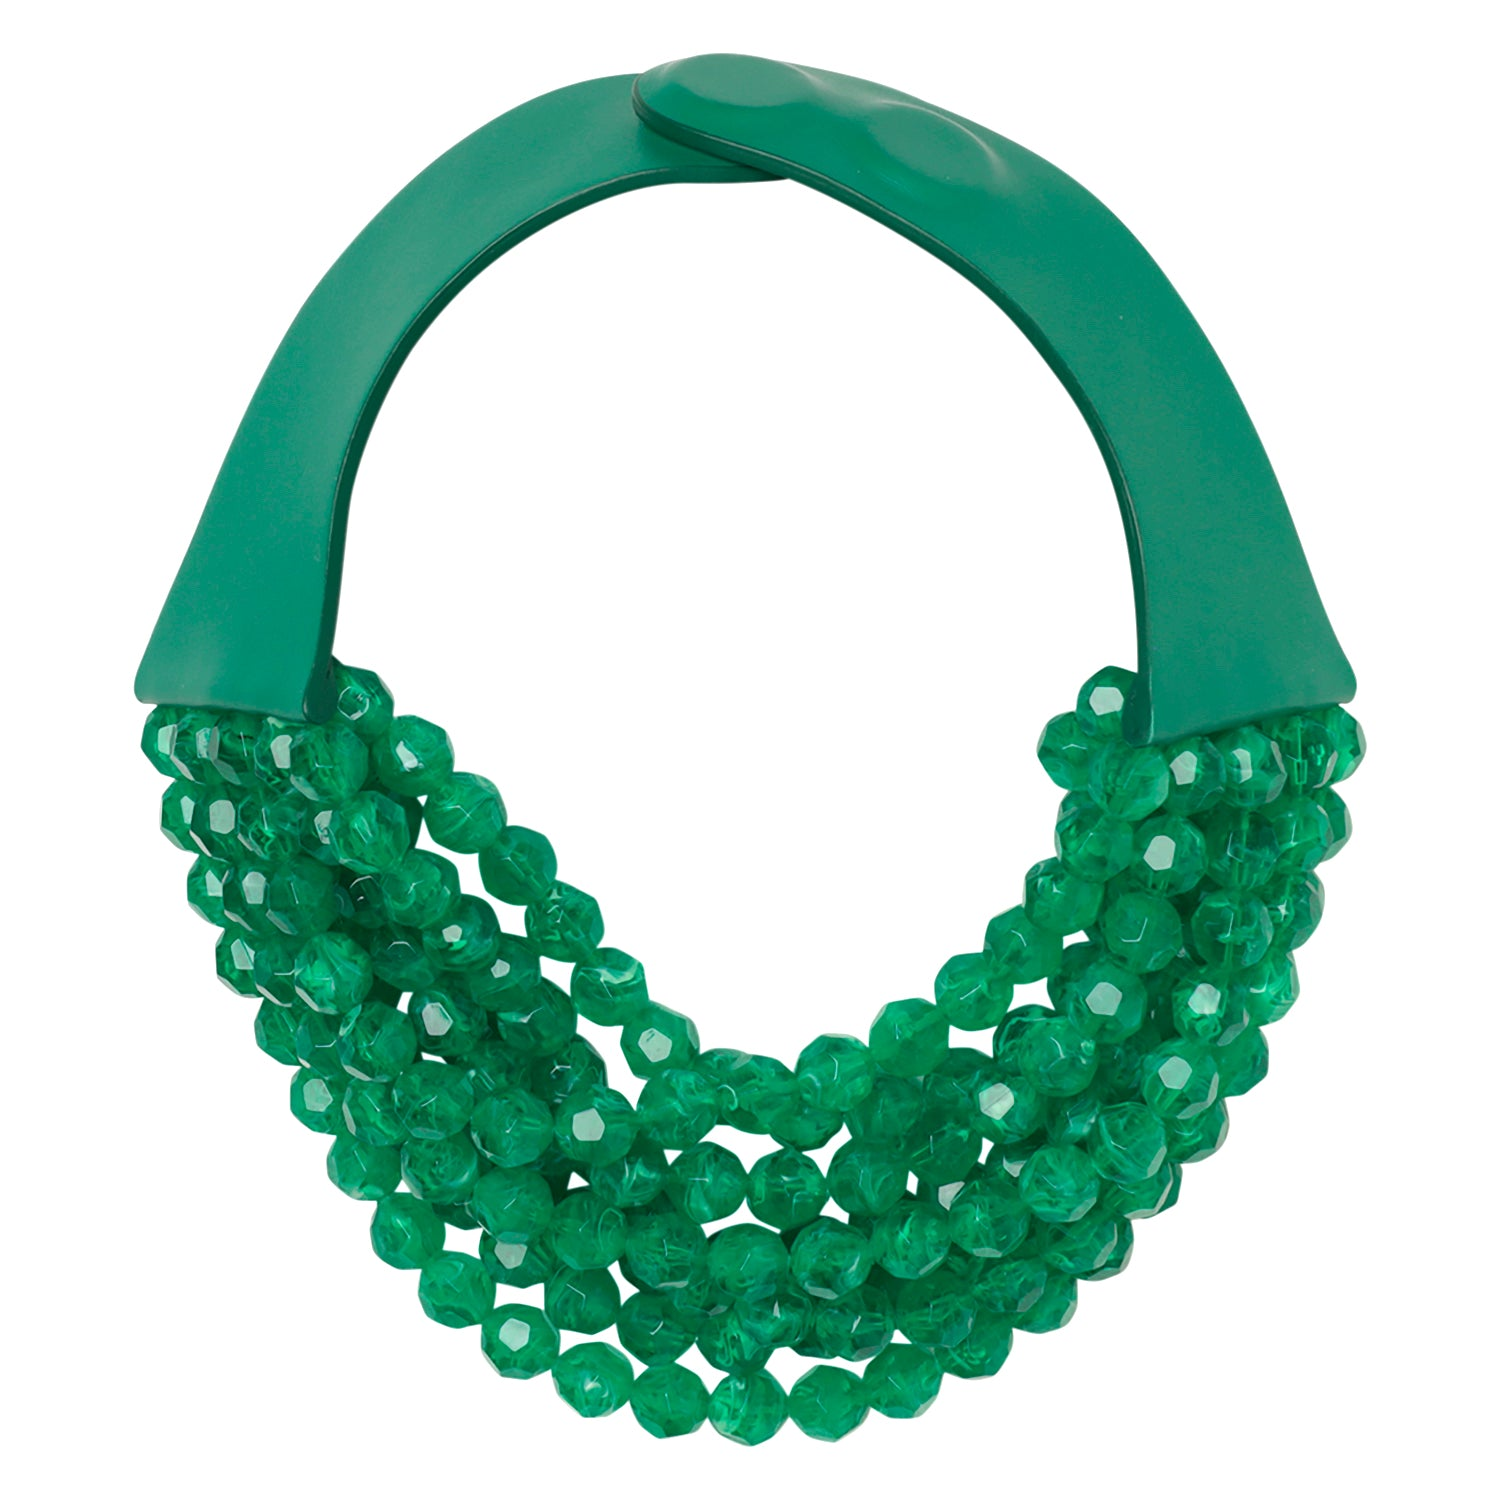 Bright Green - Fairchild Baldwin - Handmade in Italy